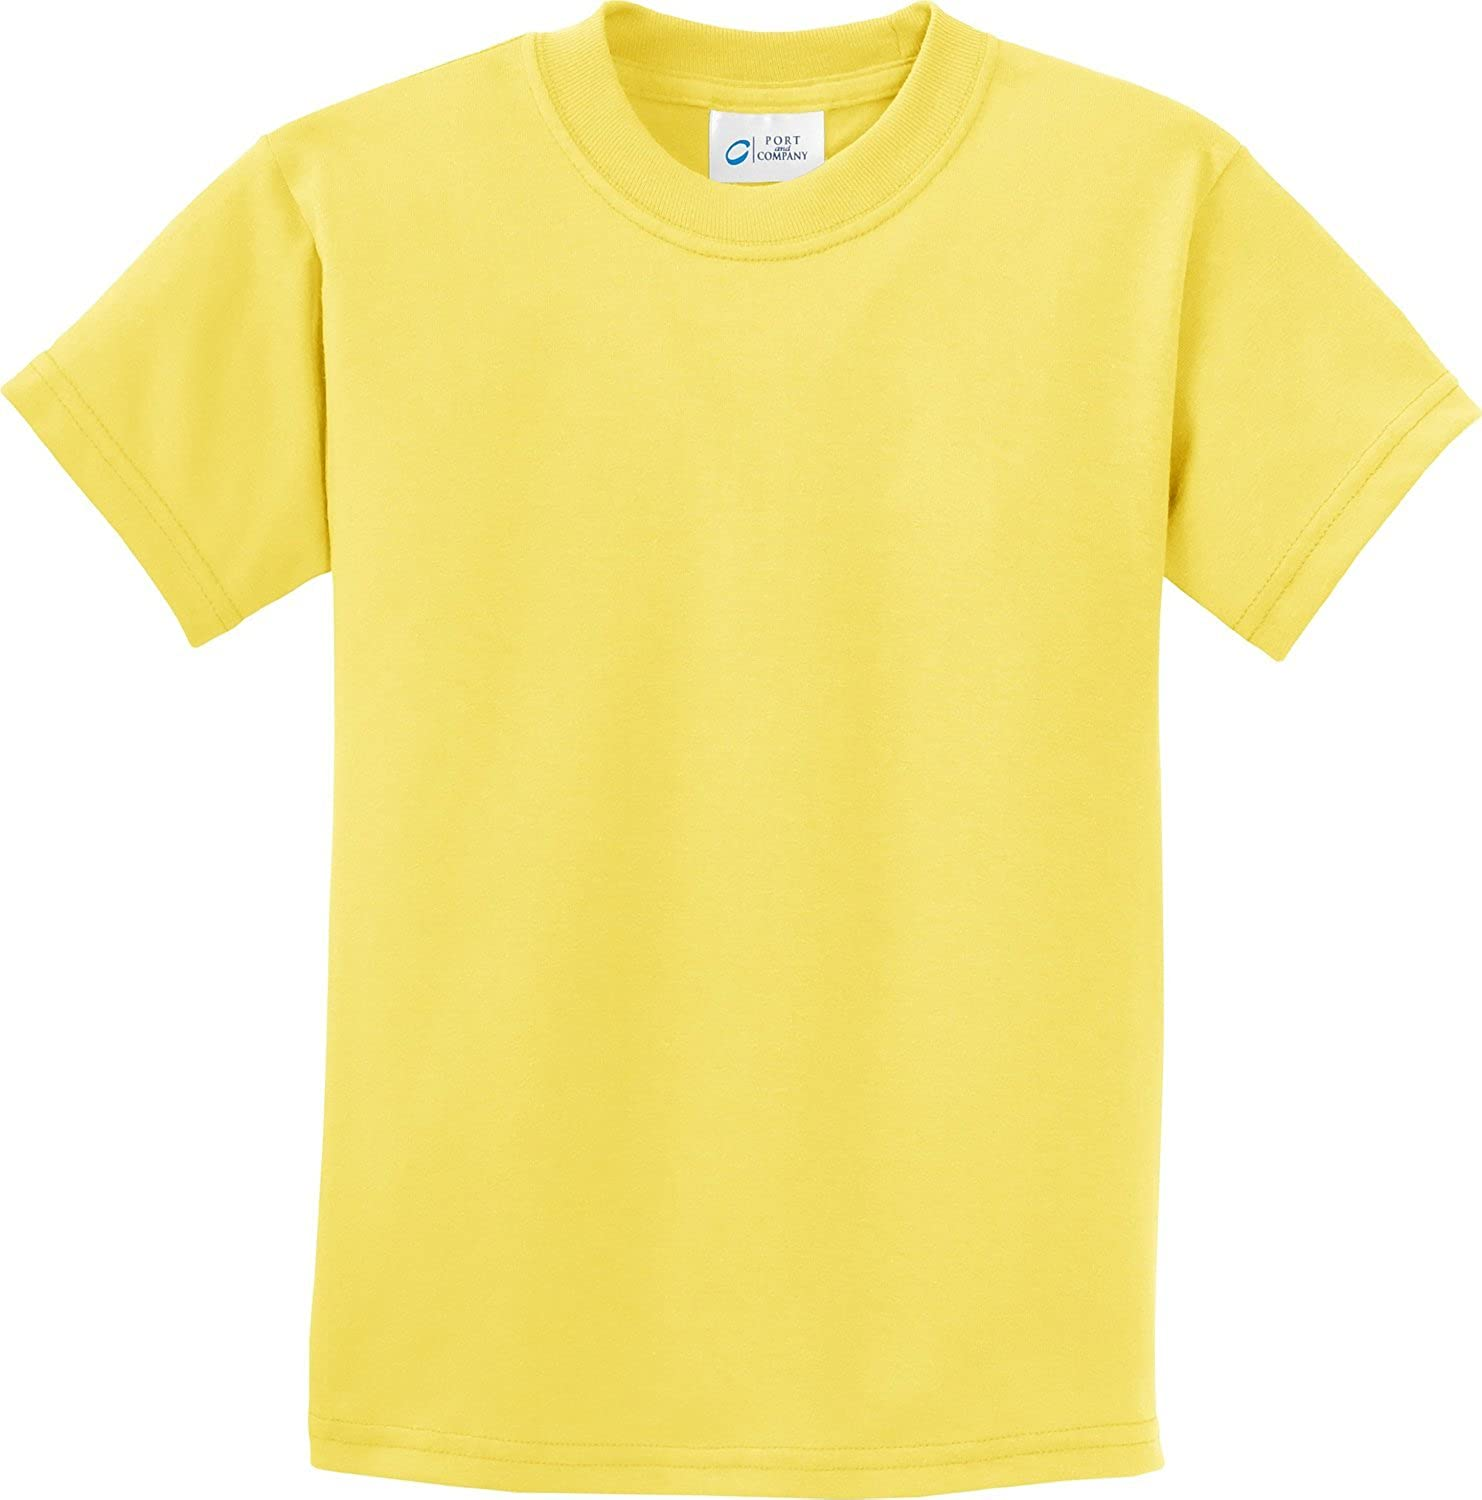 Port & Company - Youth Essential T-Shirt. - Yellow - S